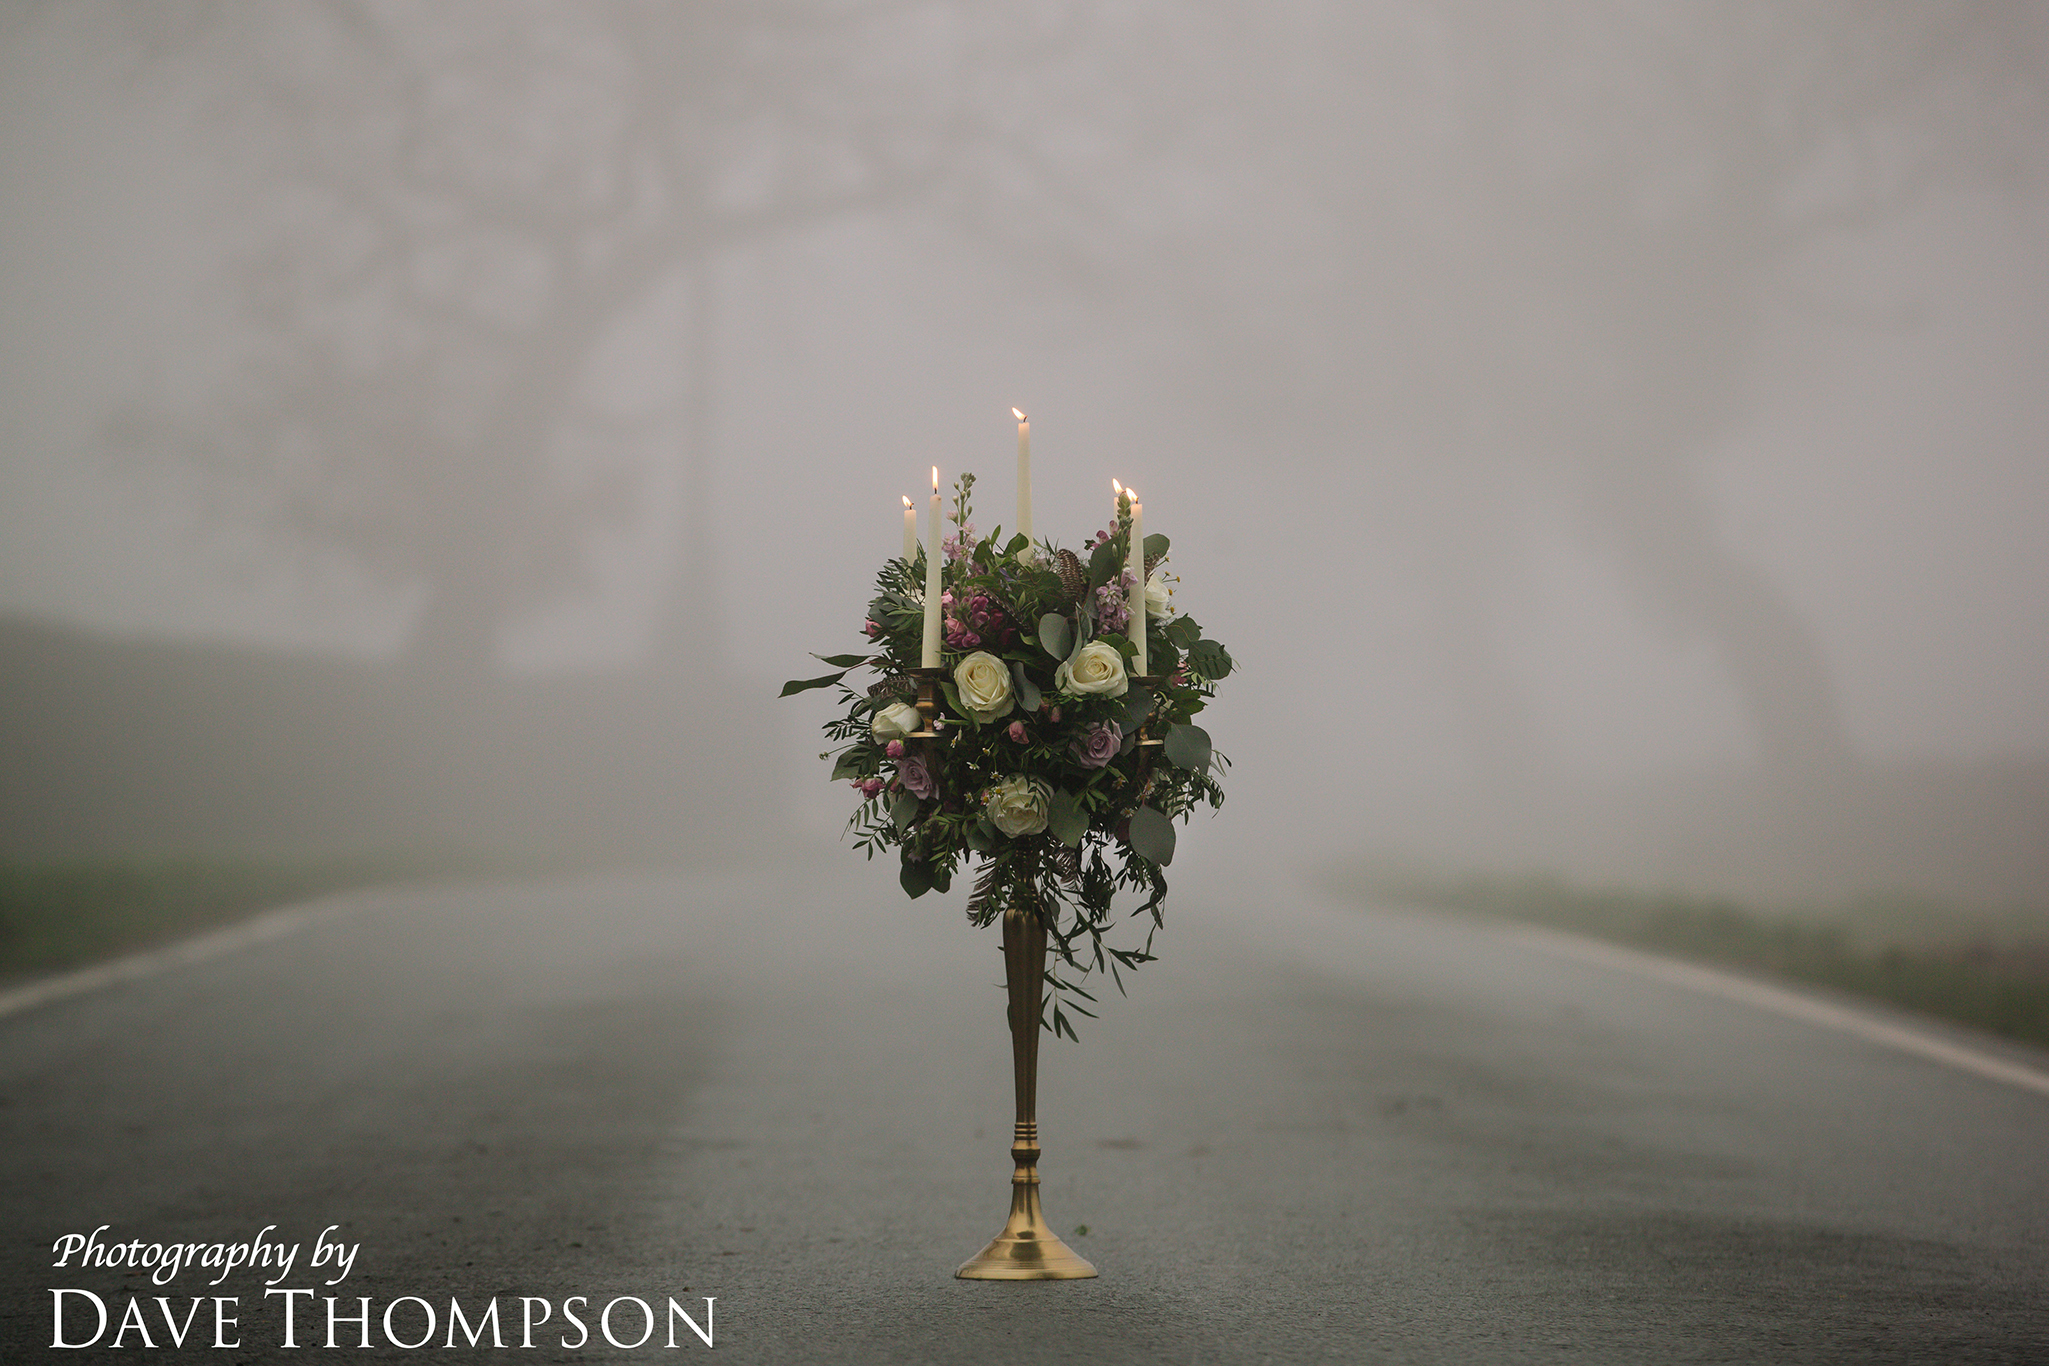 5 Photography by Dave Thompson